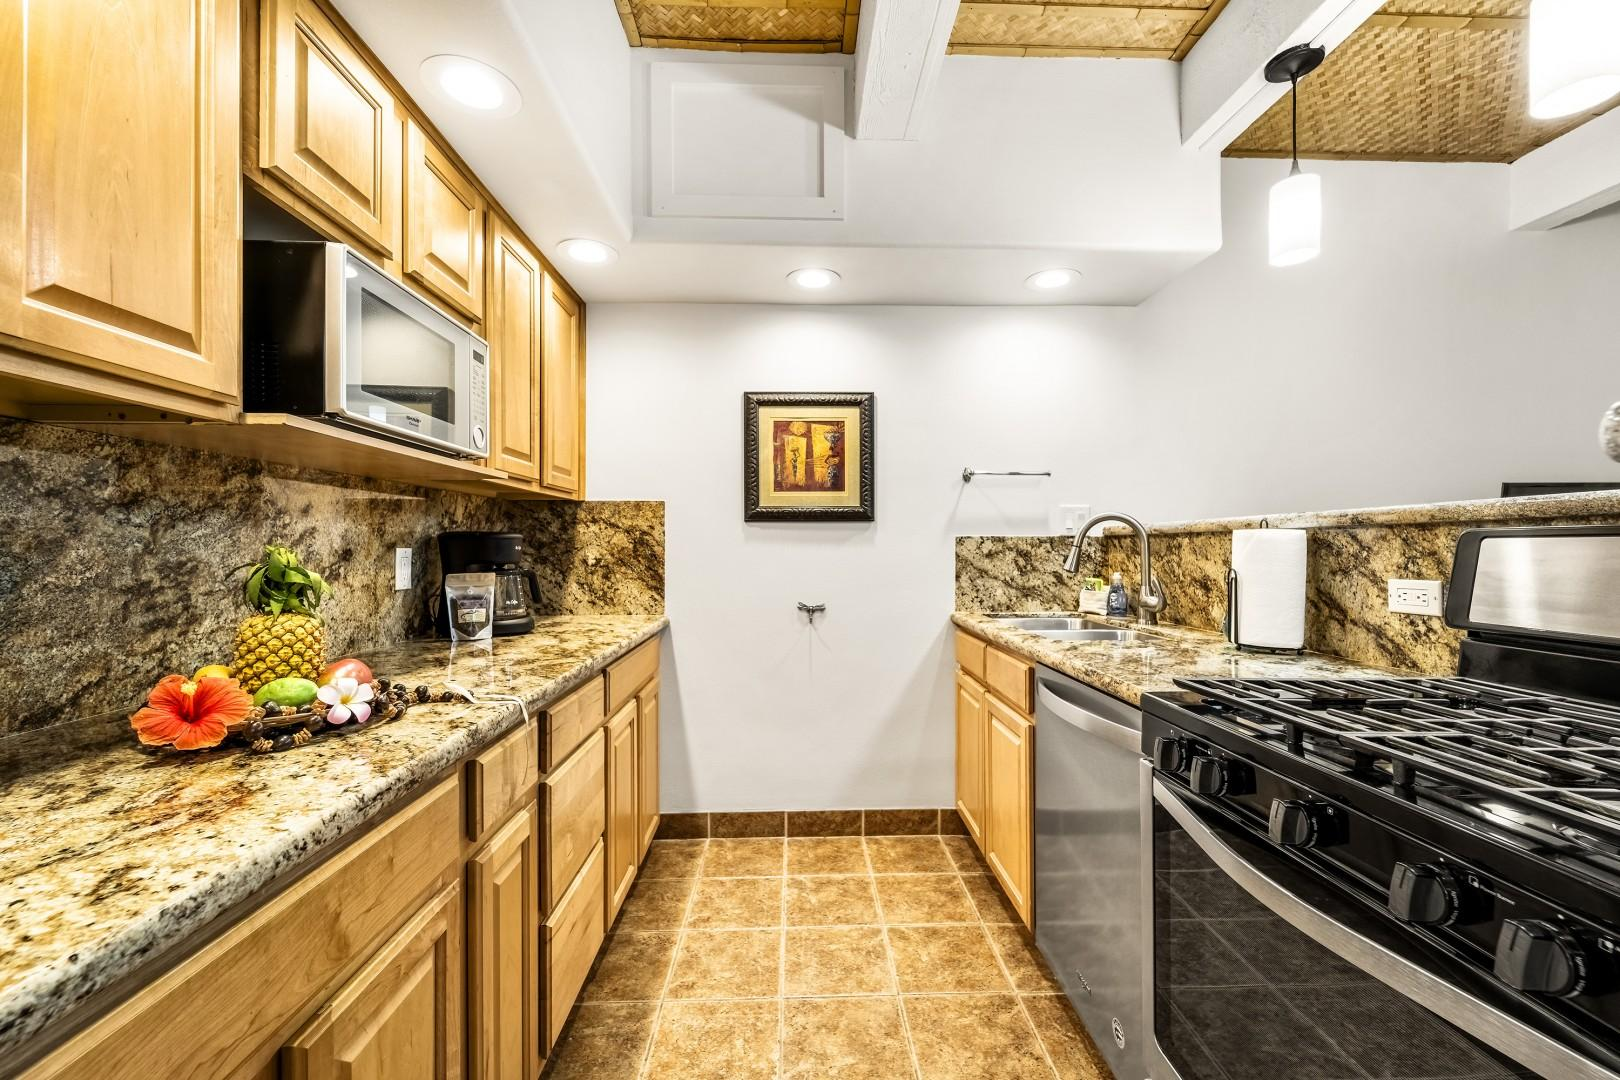 Upgraded galley kitchen for your meal preparation needs